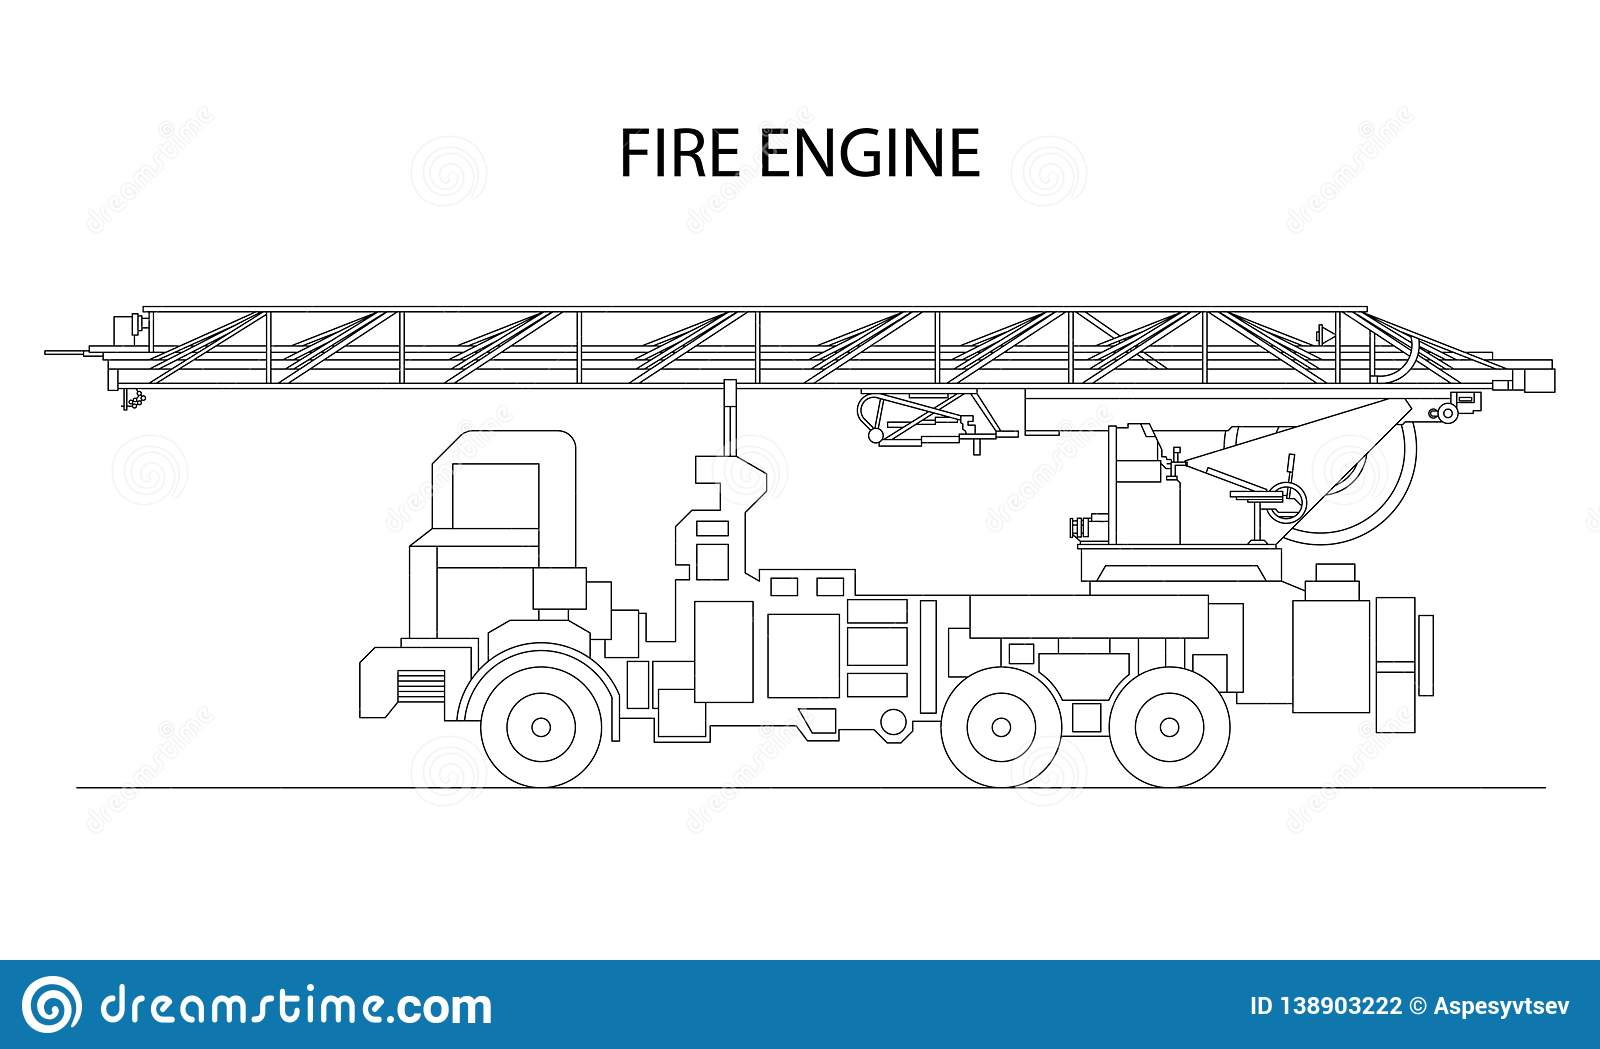 hight resolution of classic cartoon hand drawn detailed fire engine fire truck profile view vector